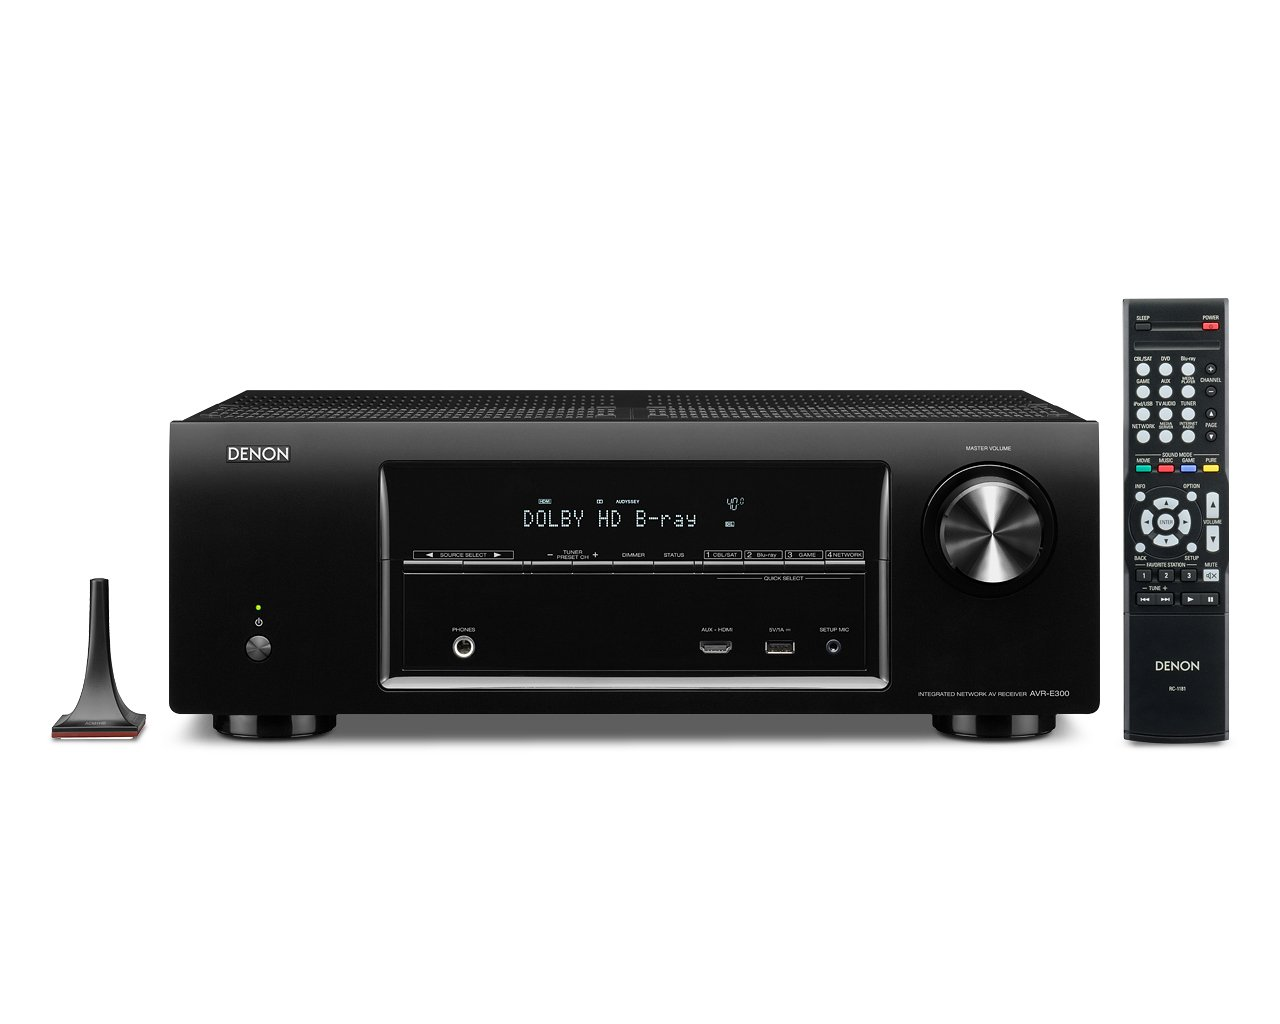 Denon AVR-E300 5.1 Channel 3D Pass Through and Networking Home Theater AV Receiver